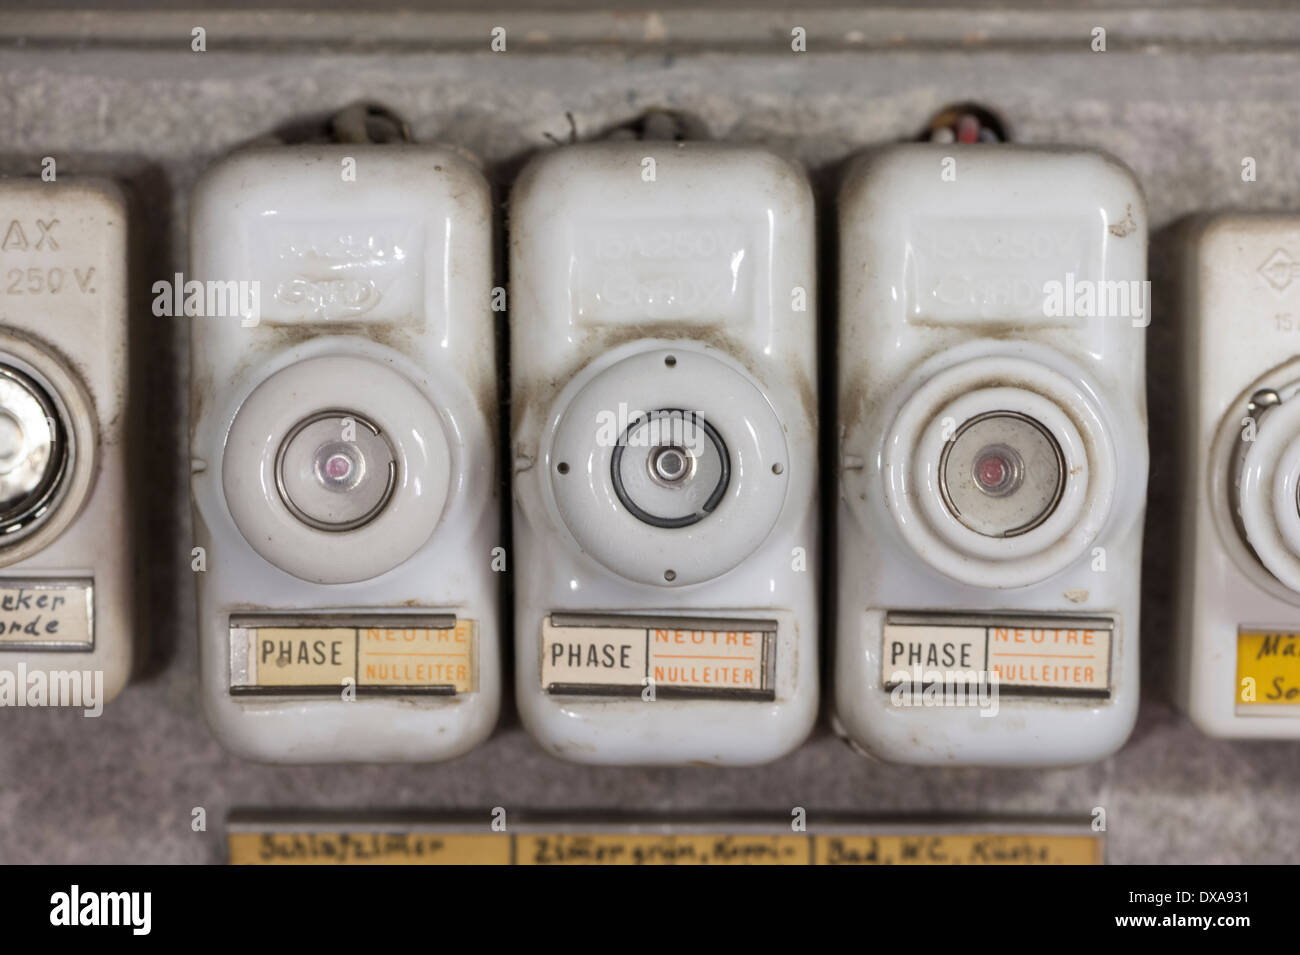 Old Electric Fuse Box Ivoiregion Style Saveenlarge Electrical